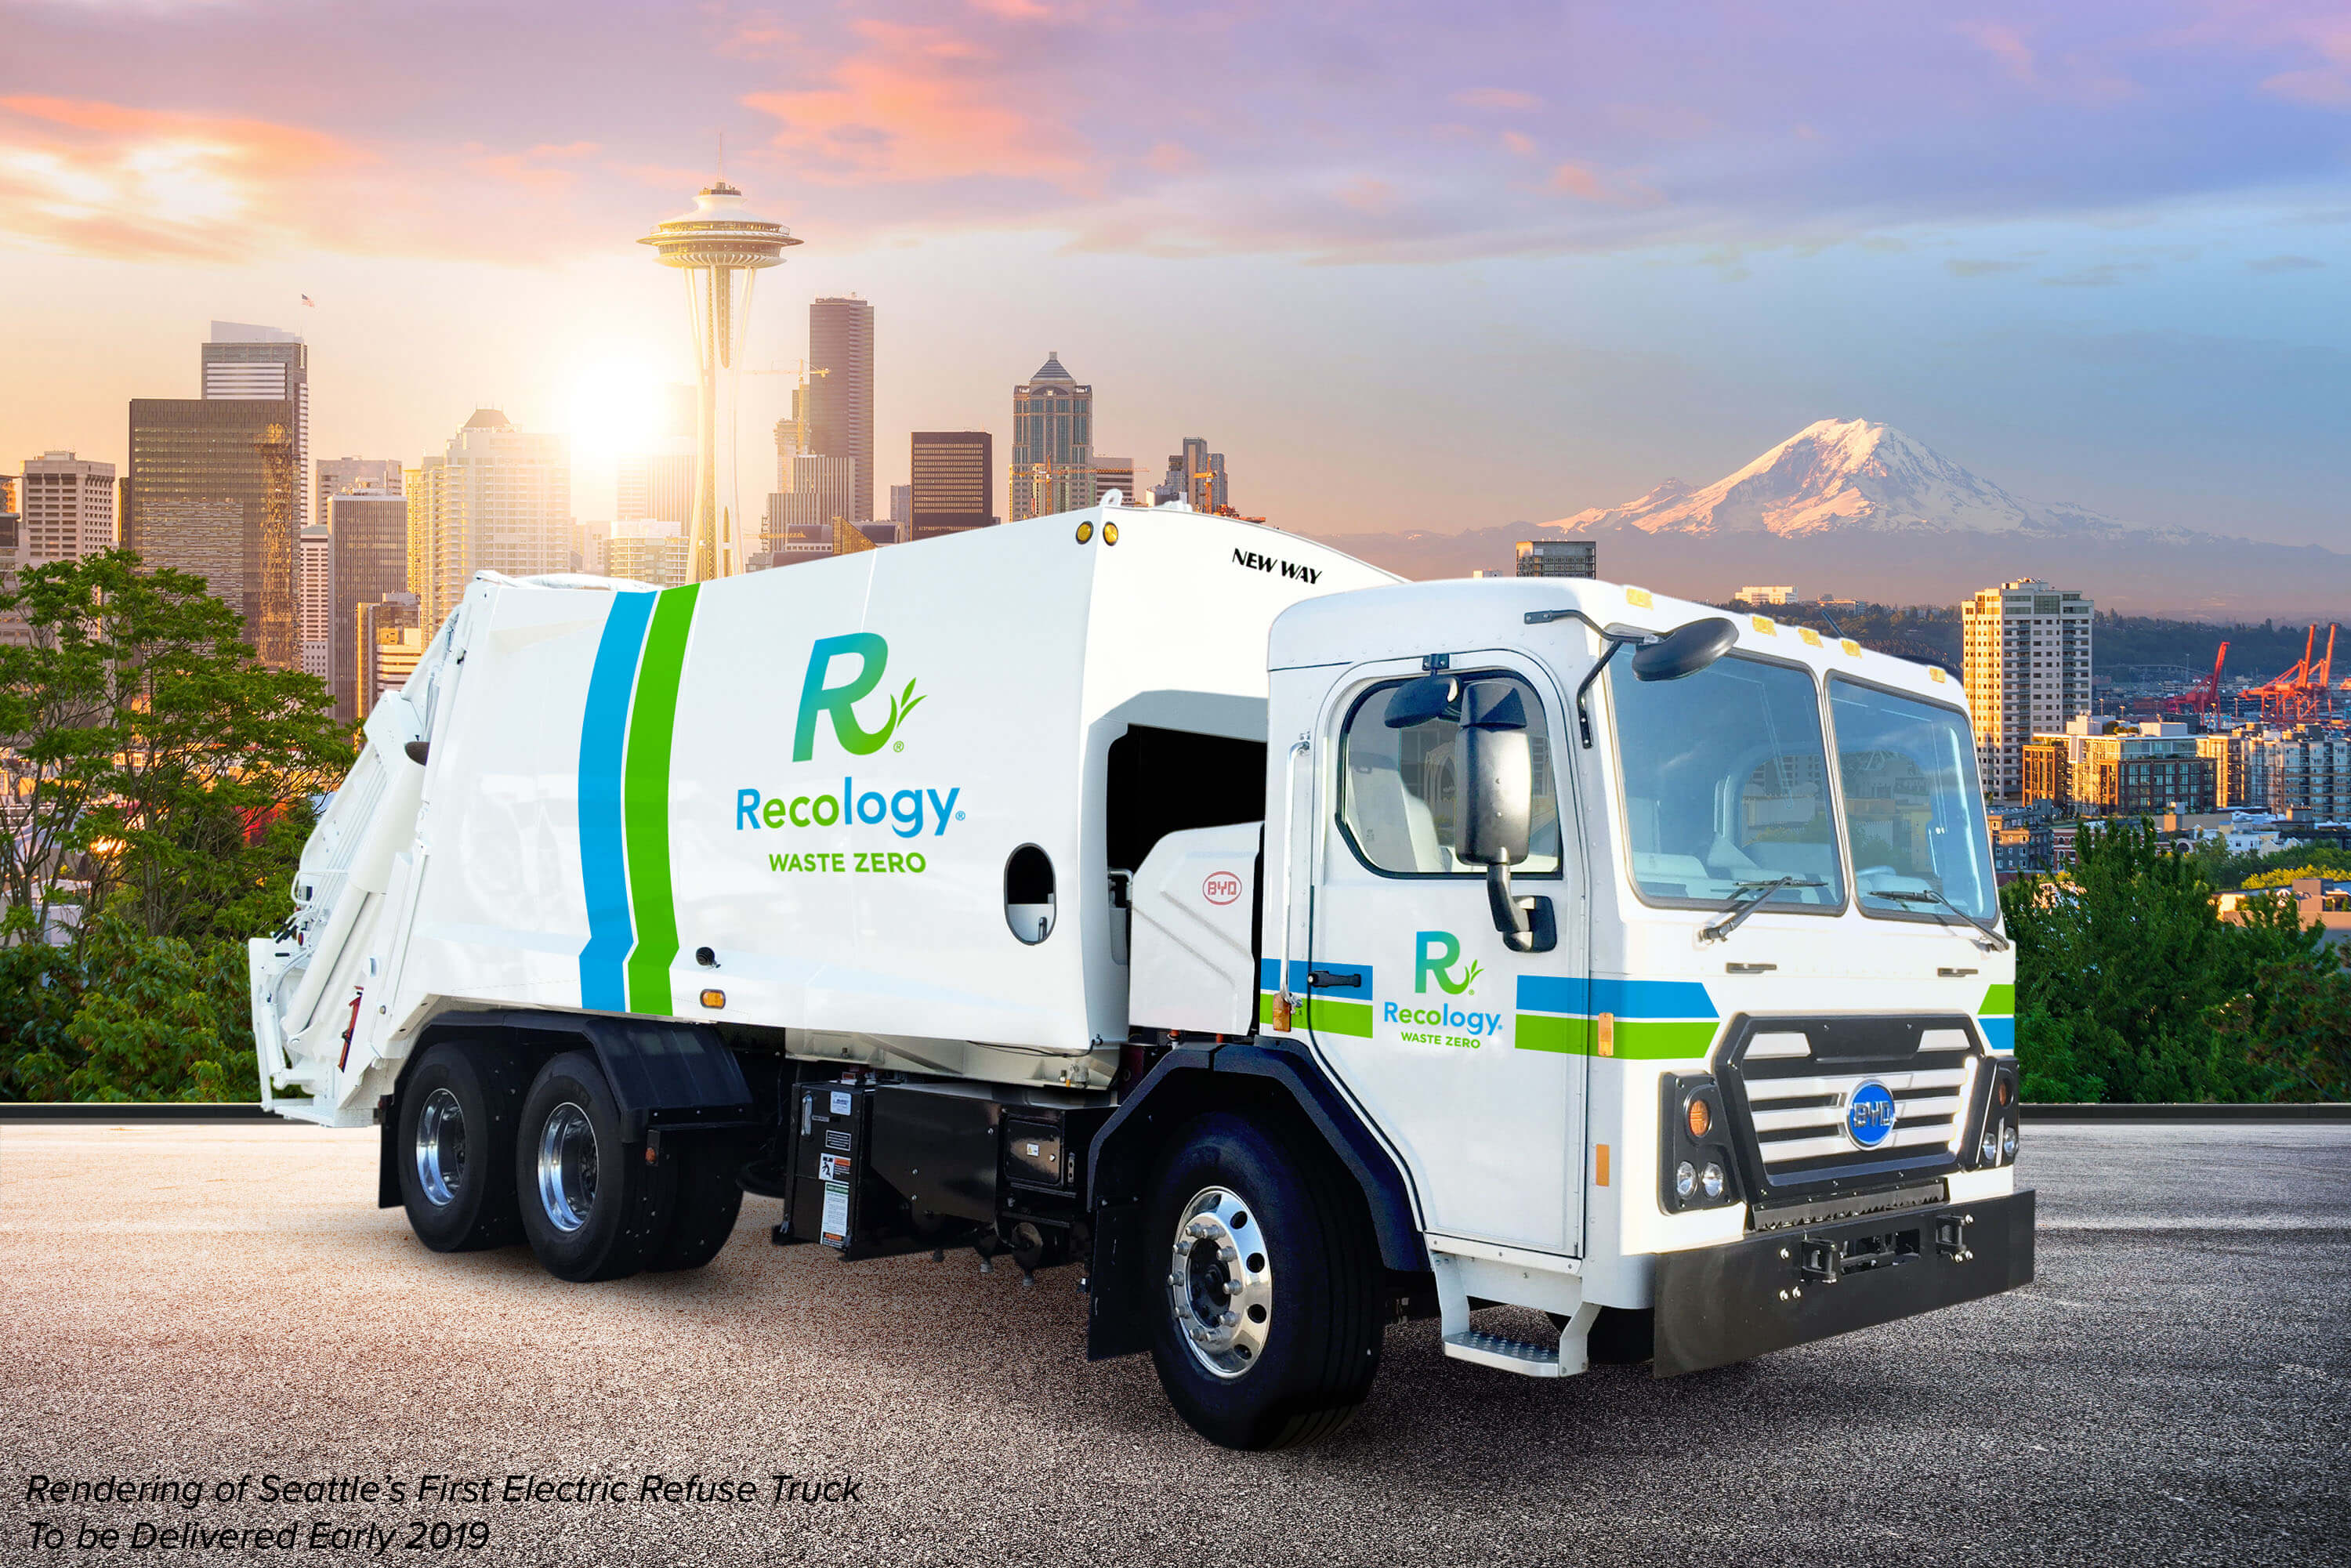 Press Release: Seattle's First Electric Refuse Trucks to be